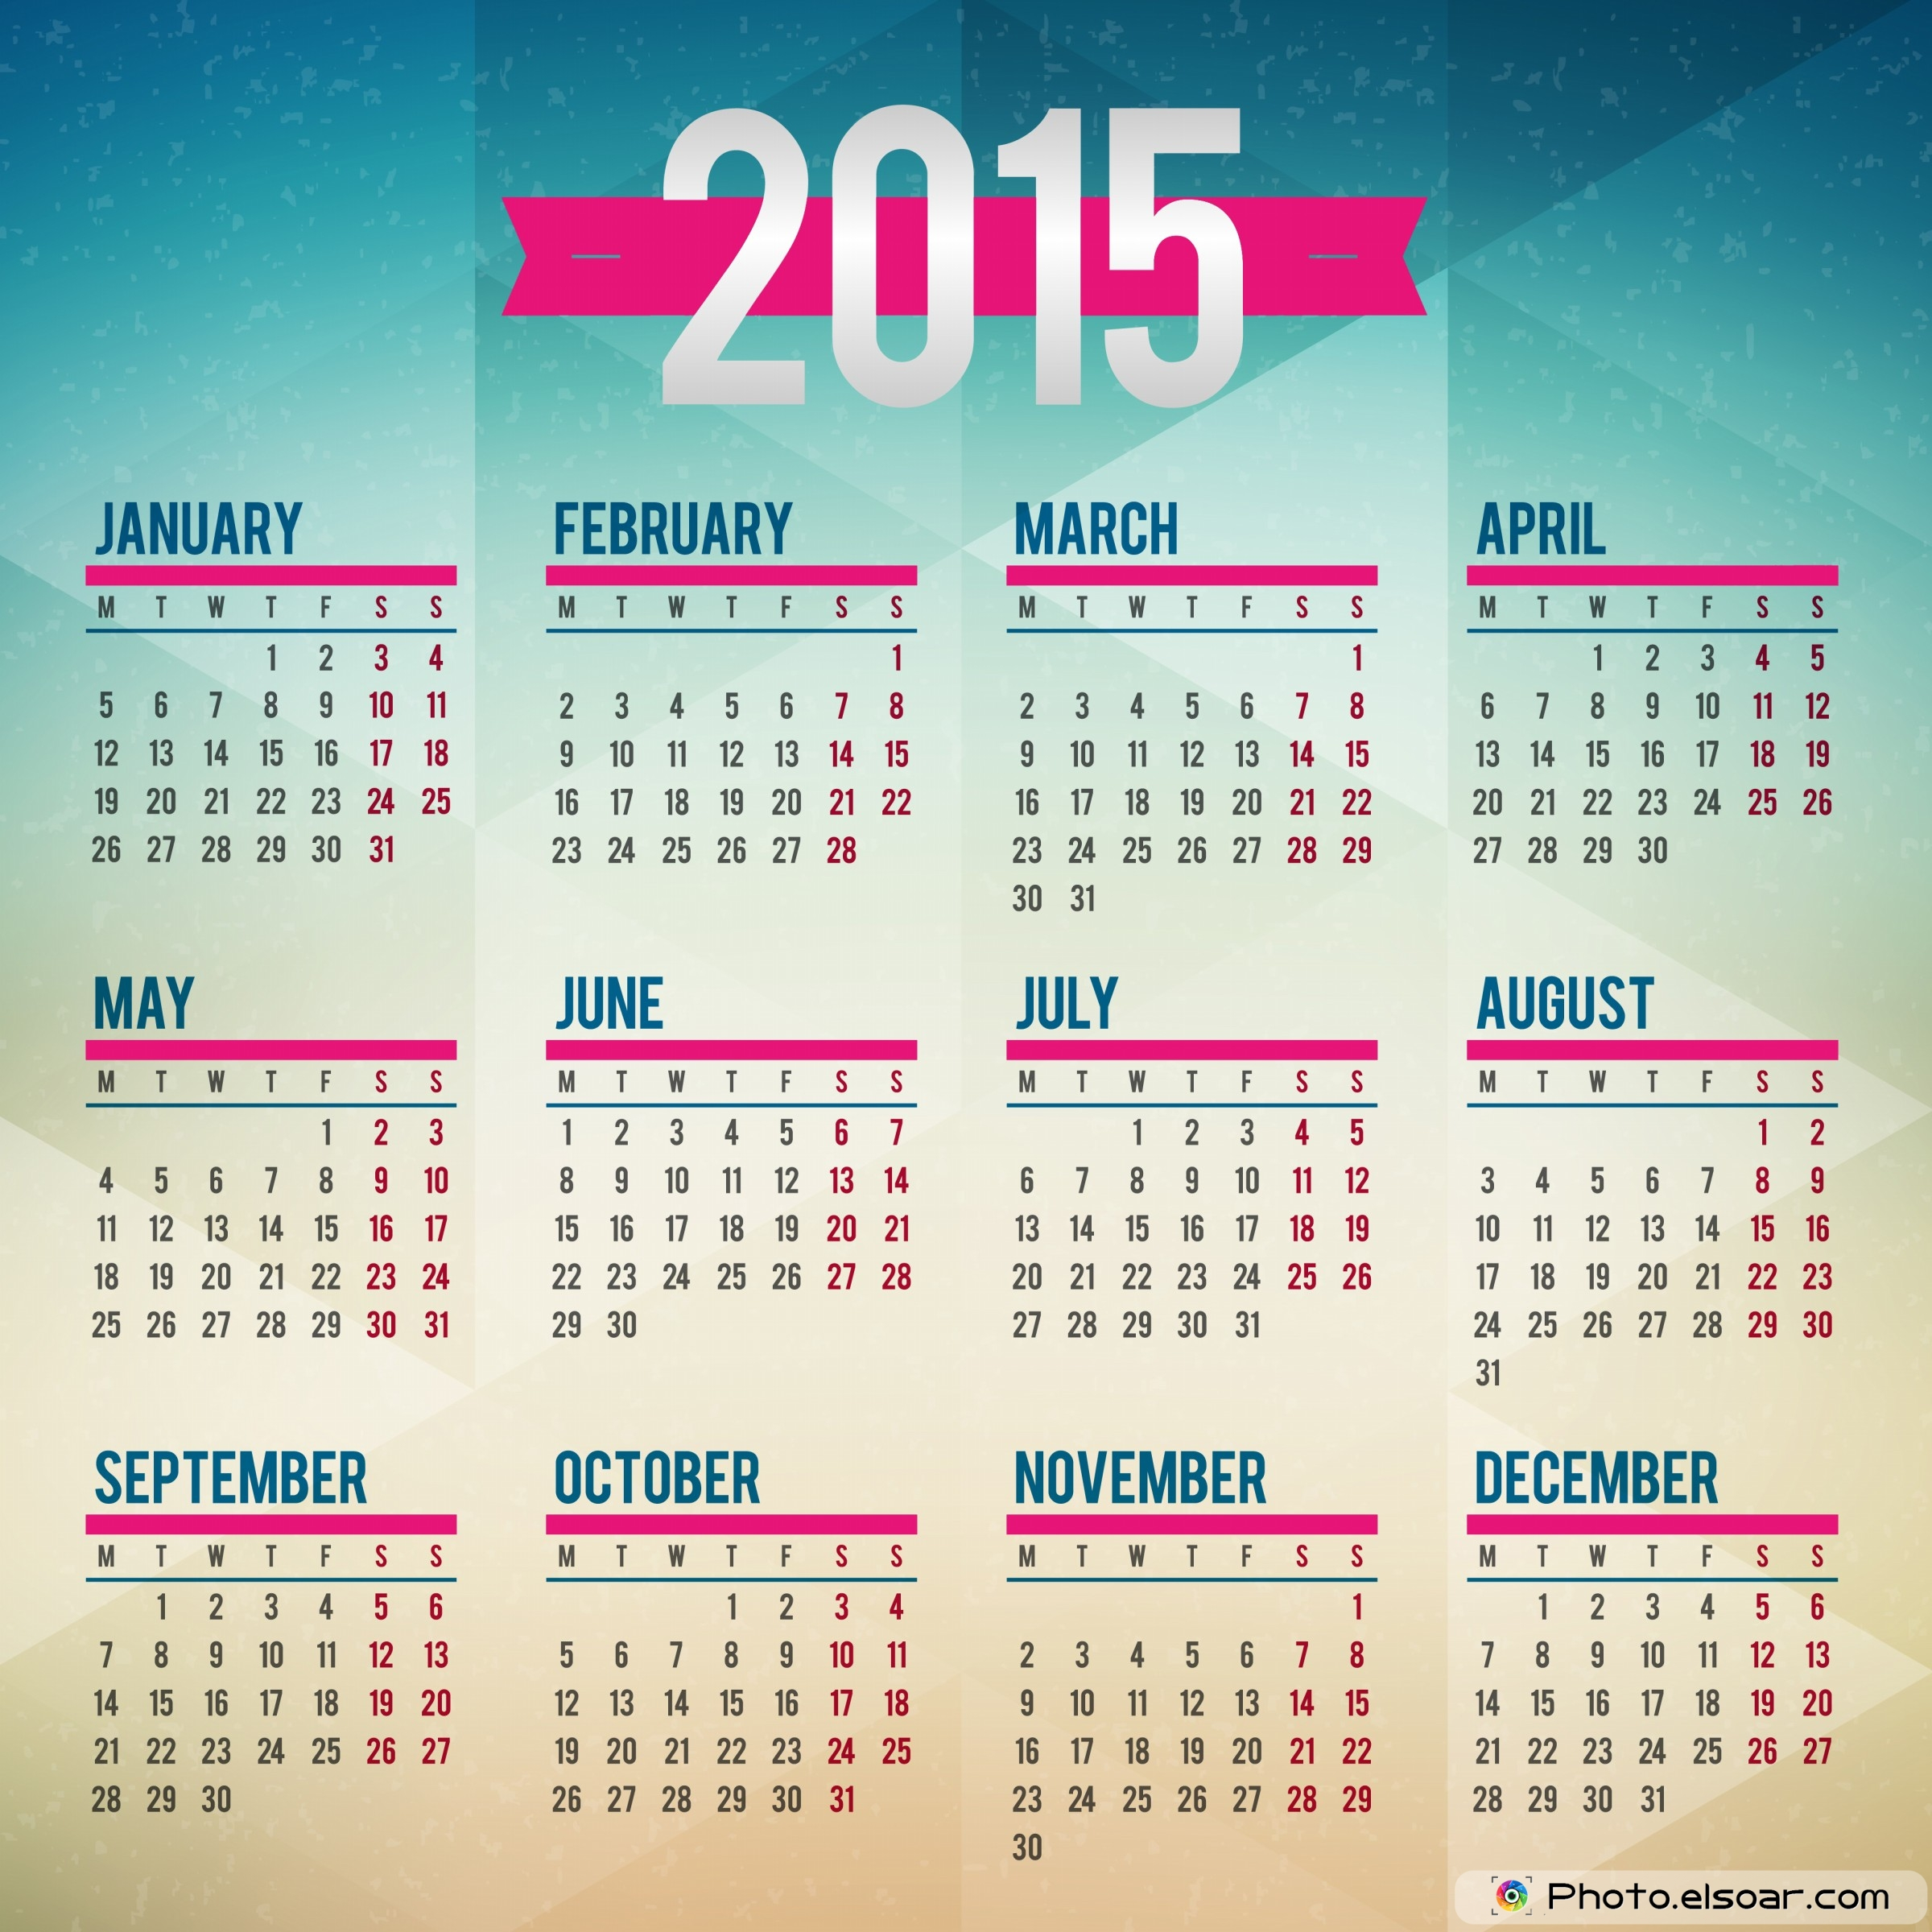 Calendar Design Photo : Printable monthly calendar designs images